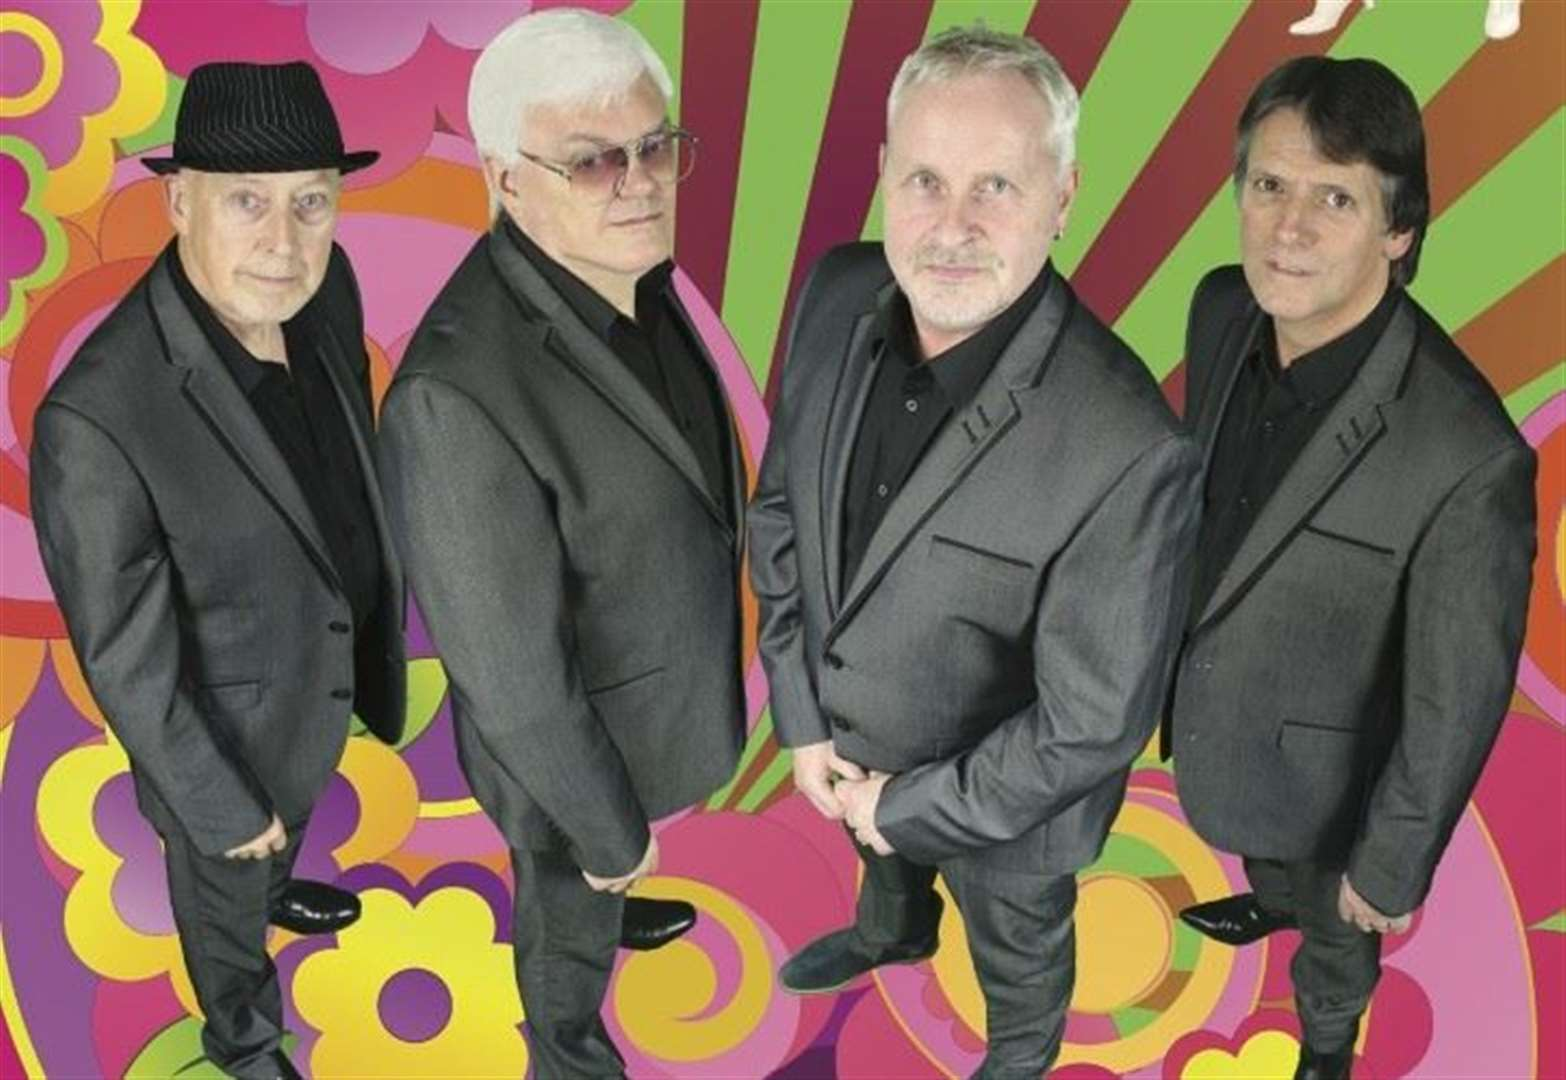 Re-live the swinging 60s at the Guildhall